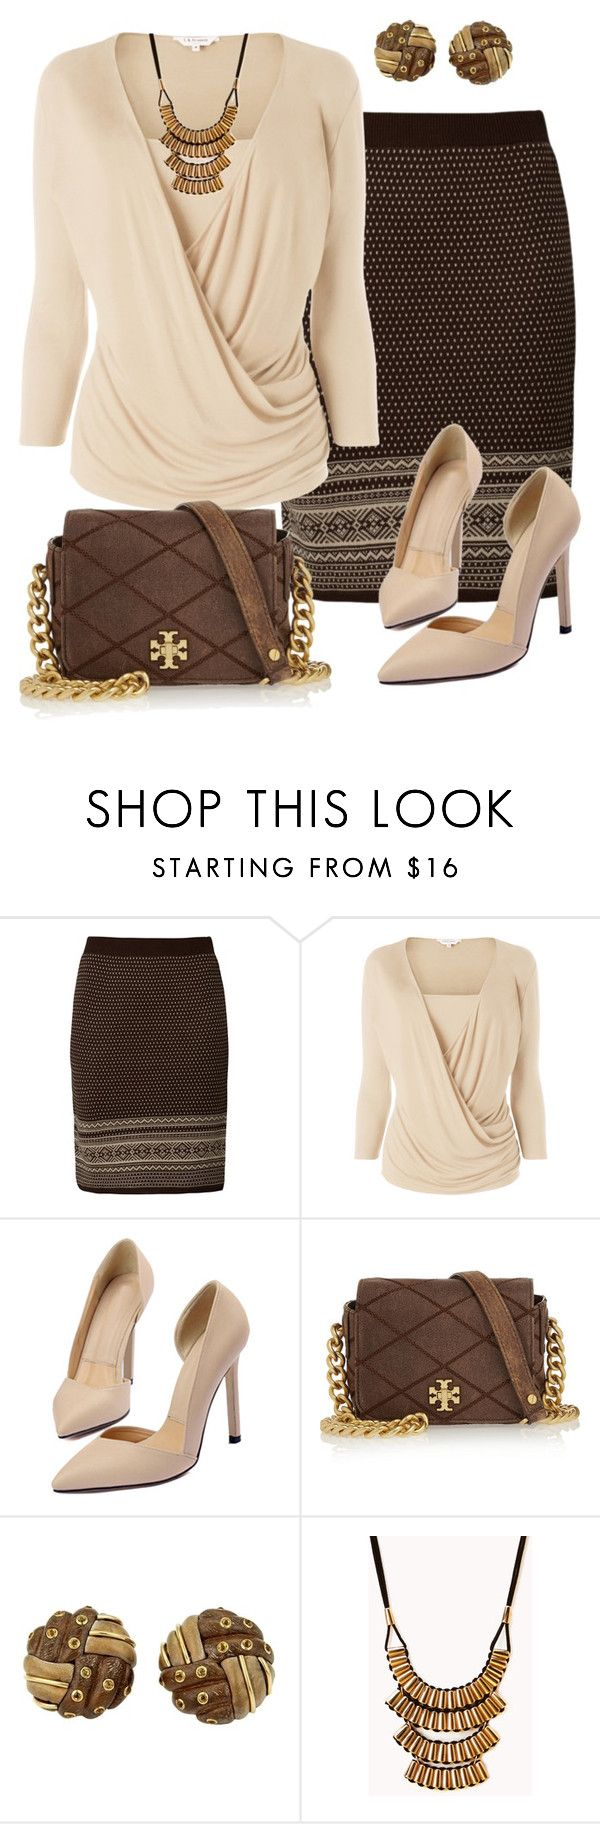 """Sin título #1206"" by marisol-menahem ❤ liked on Polyvore featuring Anna Field, L.K.Bennett, Tory Burch, Trianon and Forever 21"